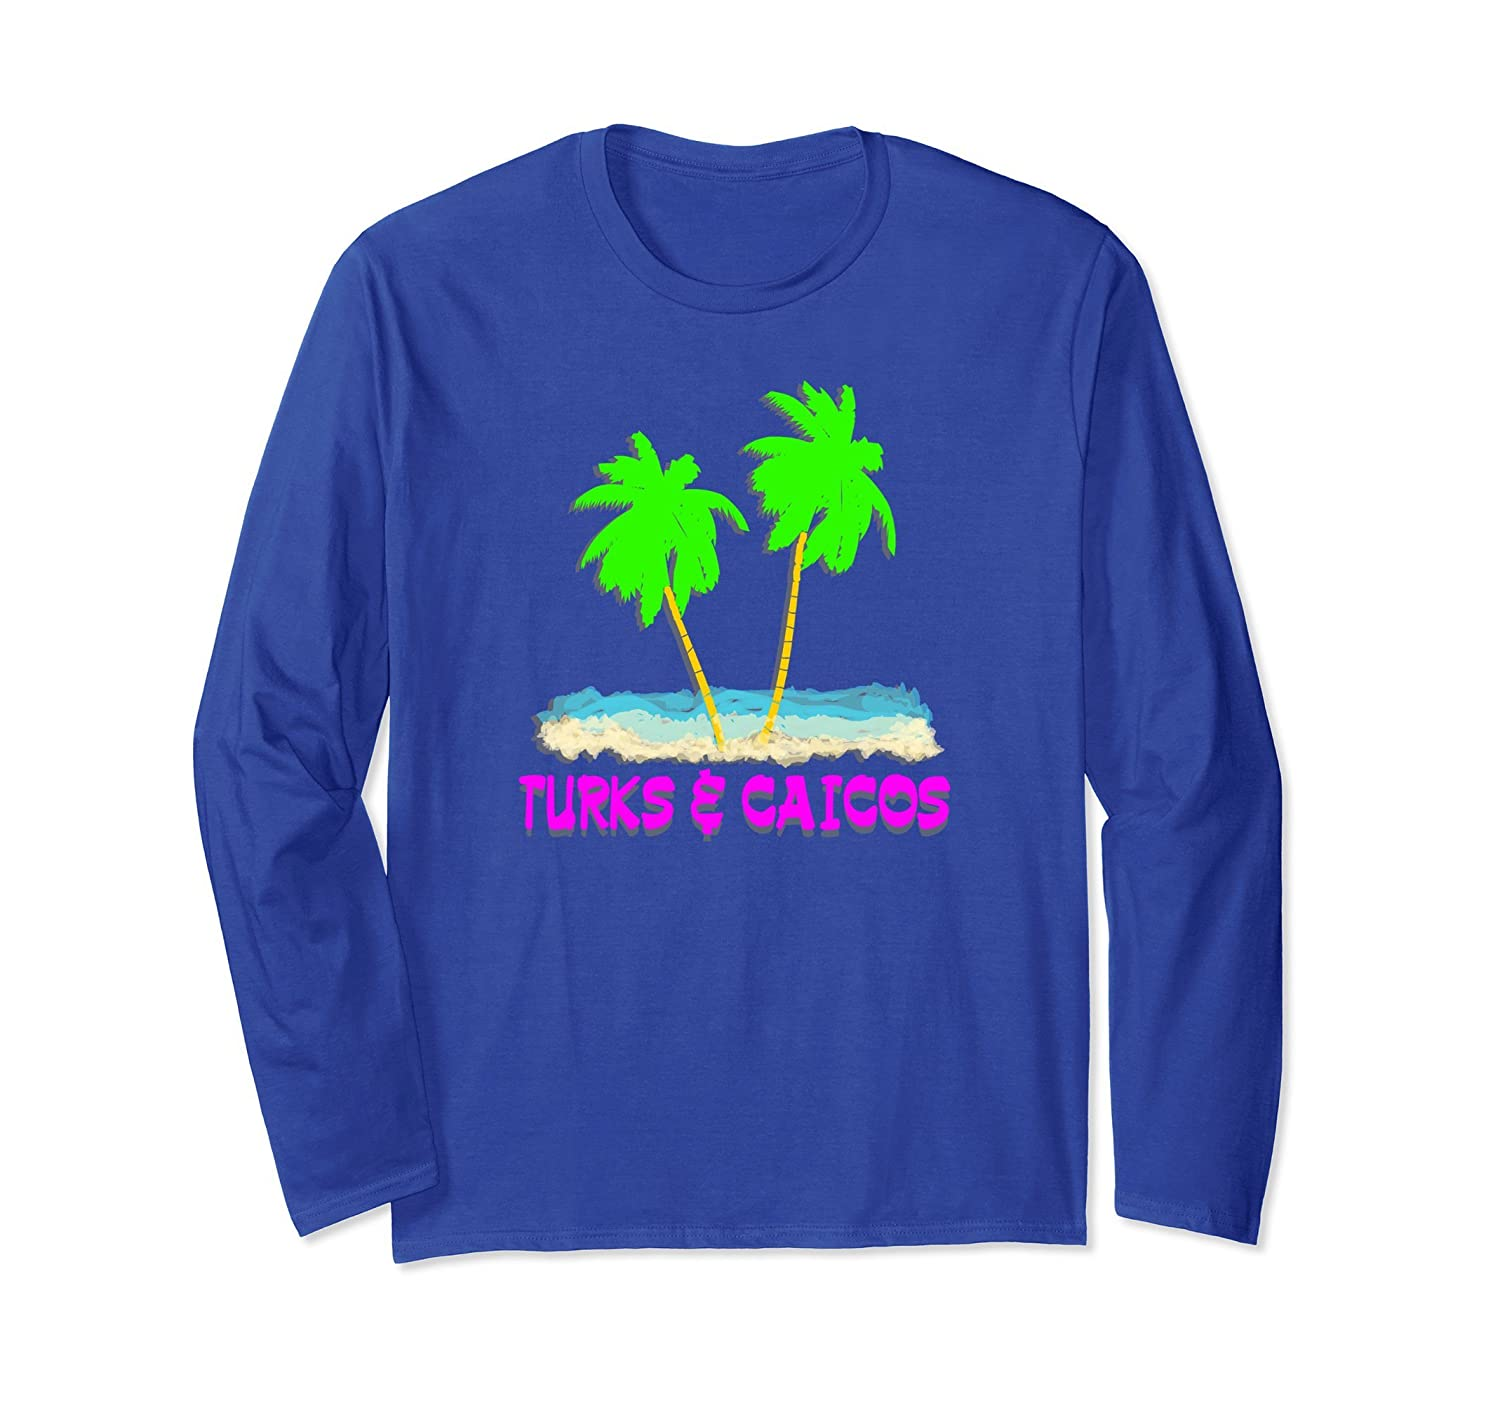 2 PALMS TURKS & CAICOS BEACH OCEAN VACATION LONG SLEEVE TEE-alottee gift